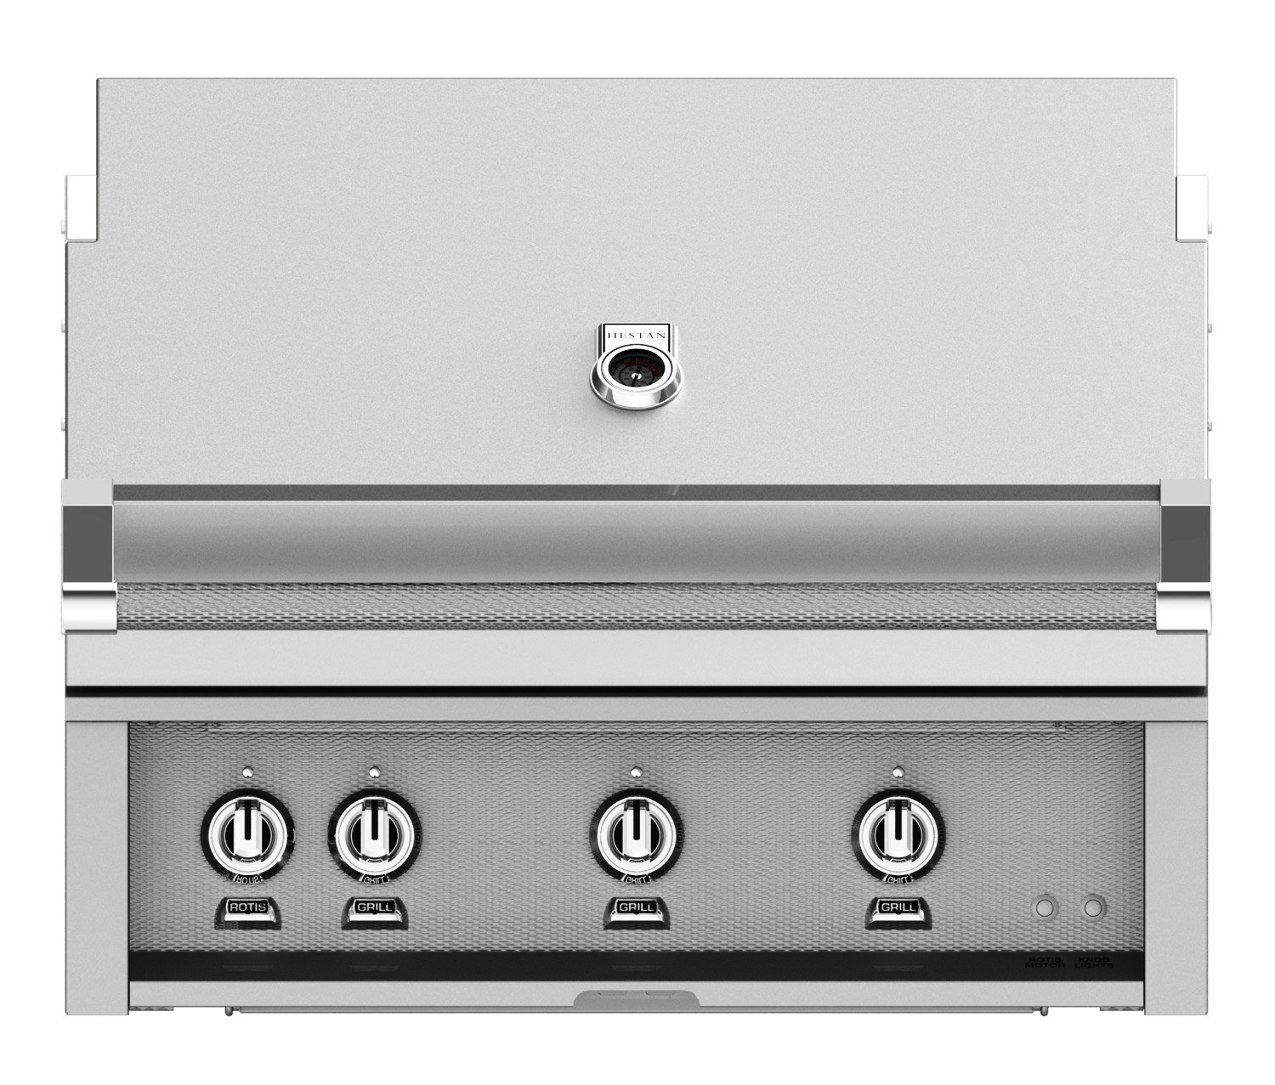 Hestan 36 Inch Built In Gas Grill Review Natural Gas Grill Gas Grill Built In Gas Grills